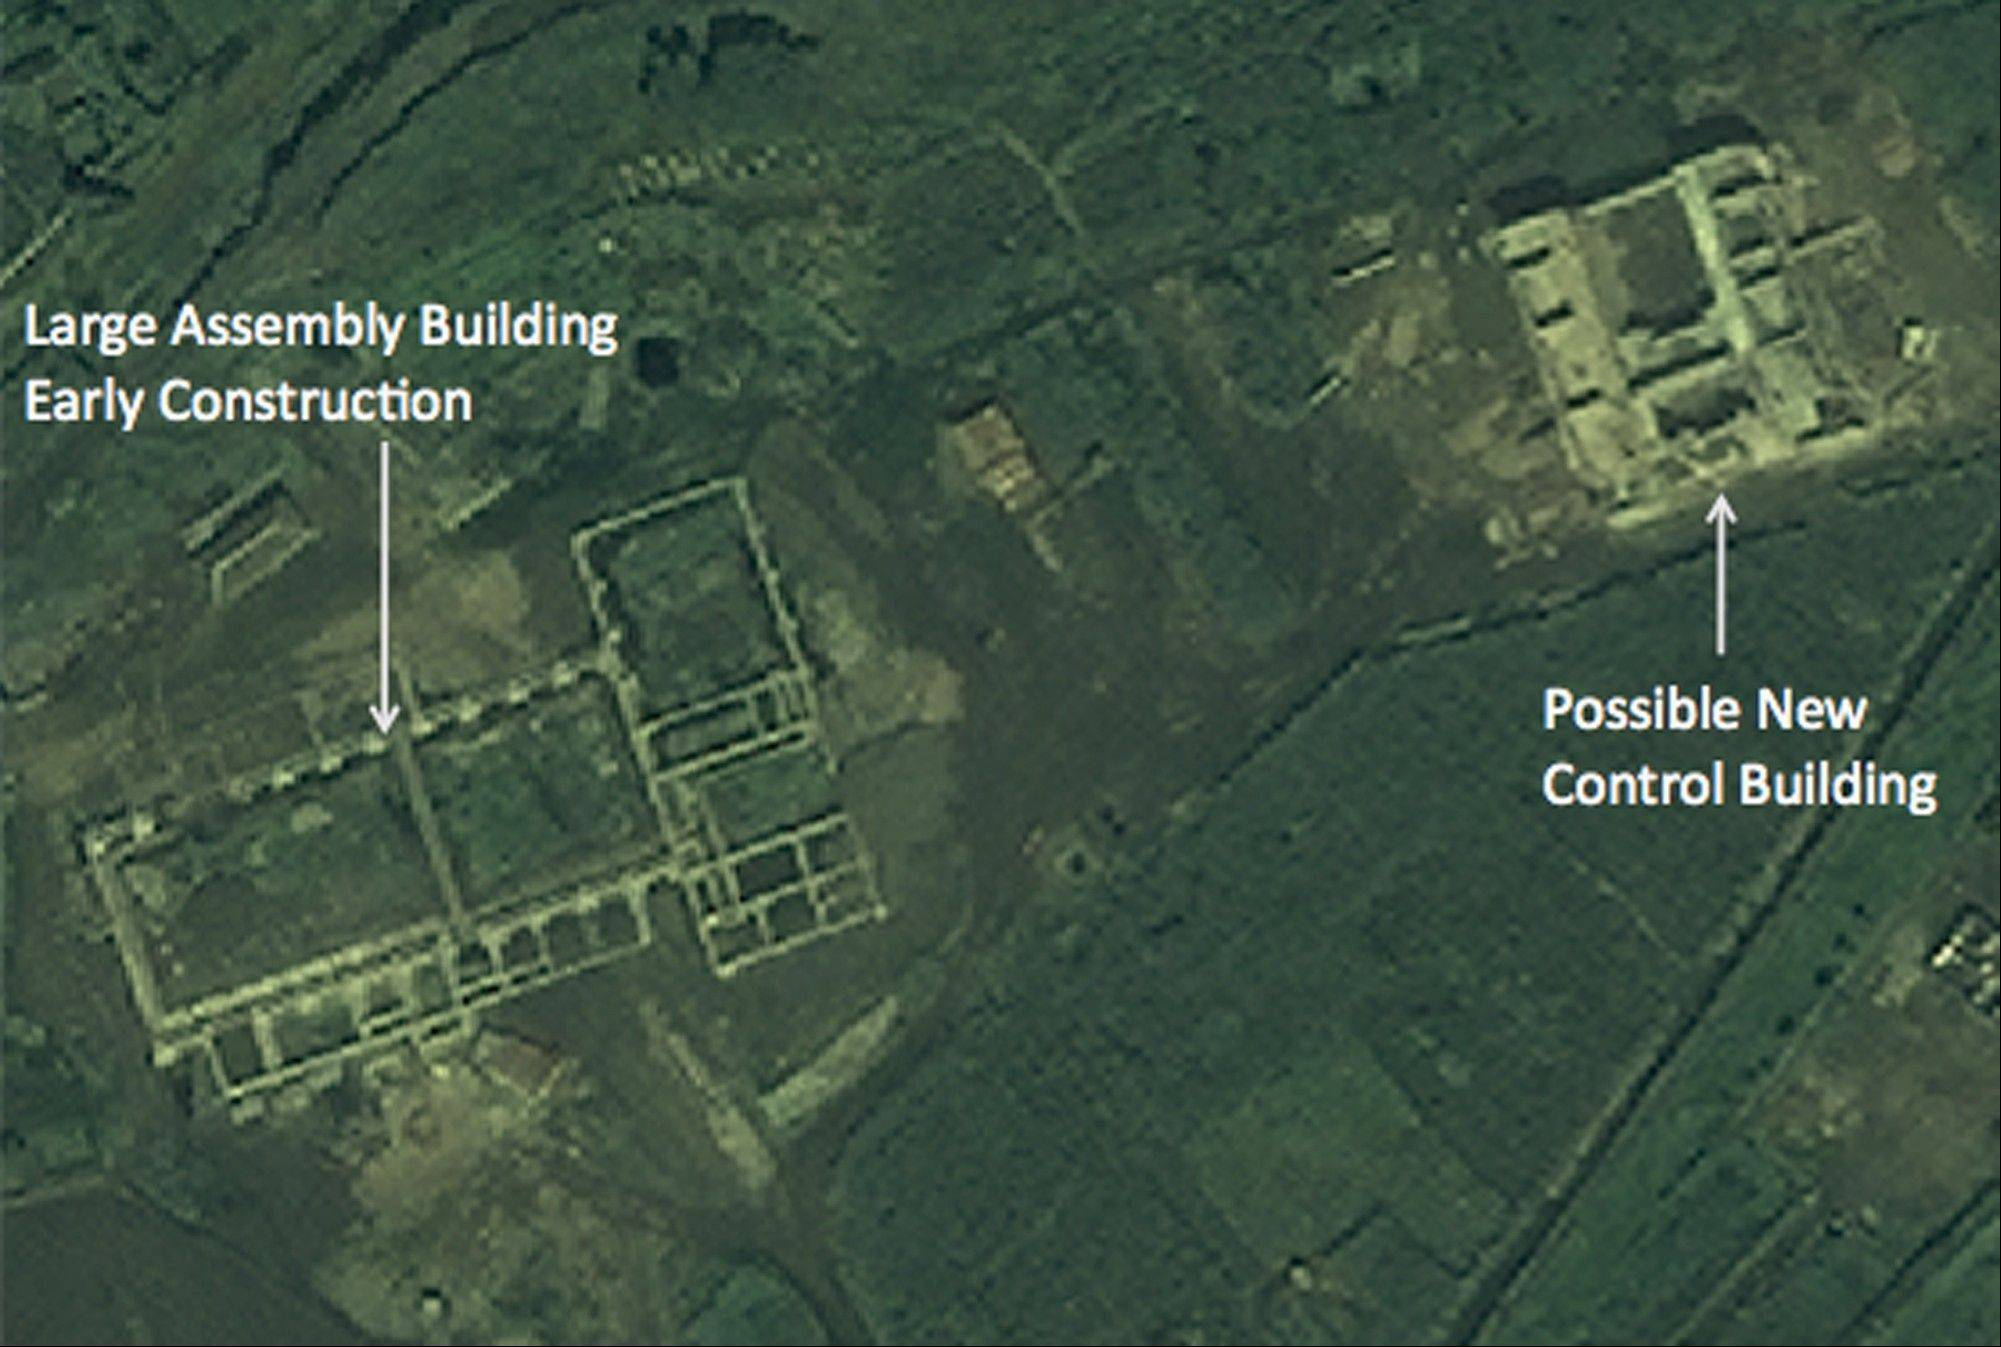 In this satellite image taken Aug. 29, 2012 by DigitalGlobe and provided Monday, Sept. 24, 2012 by 38 North, the website of the U.S.-Korea Institute at Johns Hopkins School of Advanced International Studies, structures which an analyst says a newly commenced construction site of what is probably a new rocket launch control center for the entire Tonghae launch complex and a large, still unfinished rocket assembly building are seen near the village of Musudan-ri on the northeast coast of North Korea.